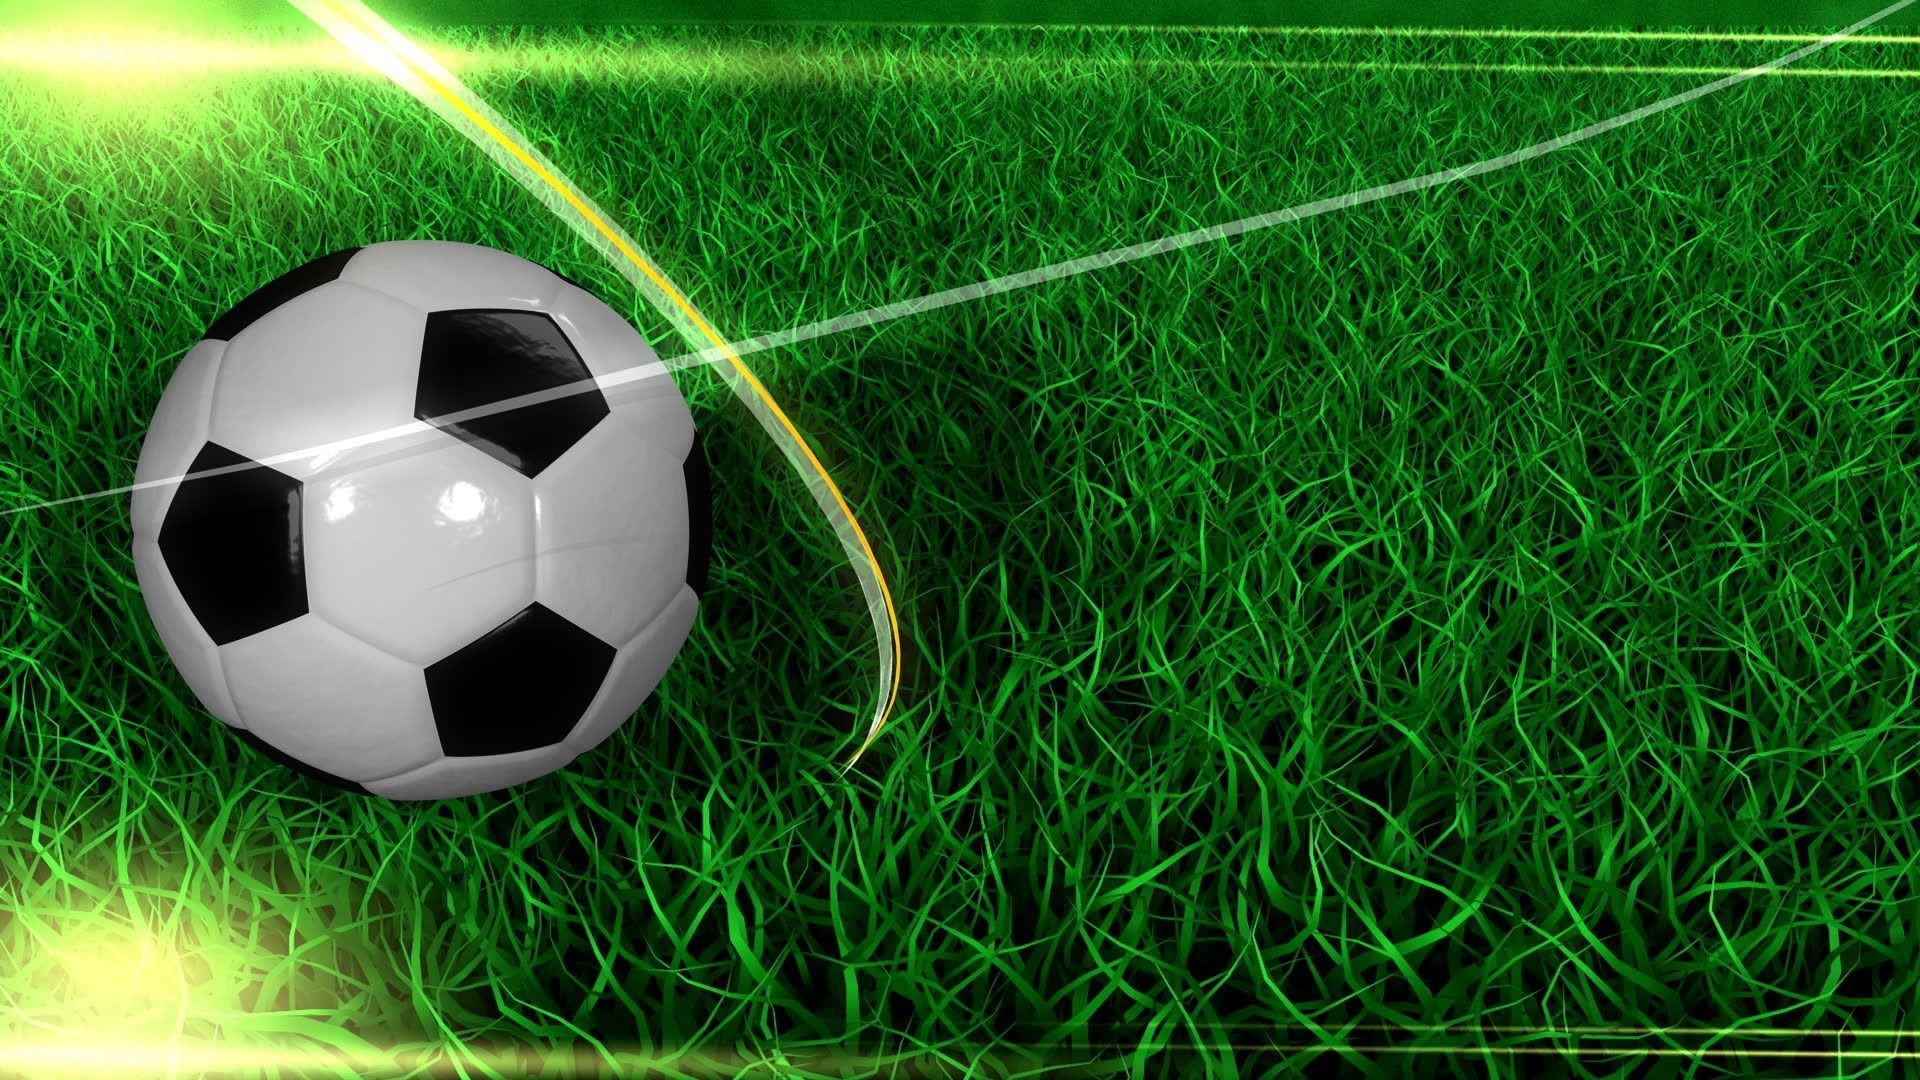 Amazing Soccer Wallpaper For Android